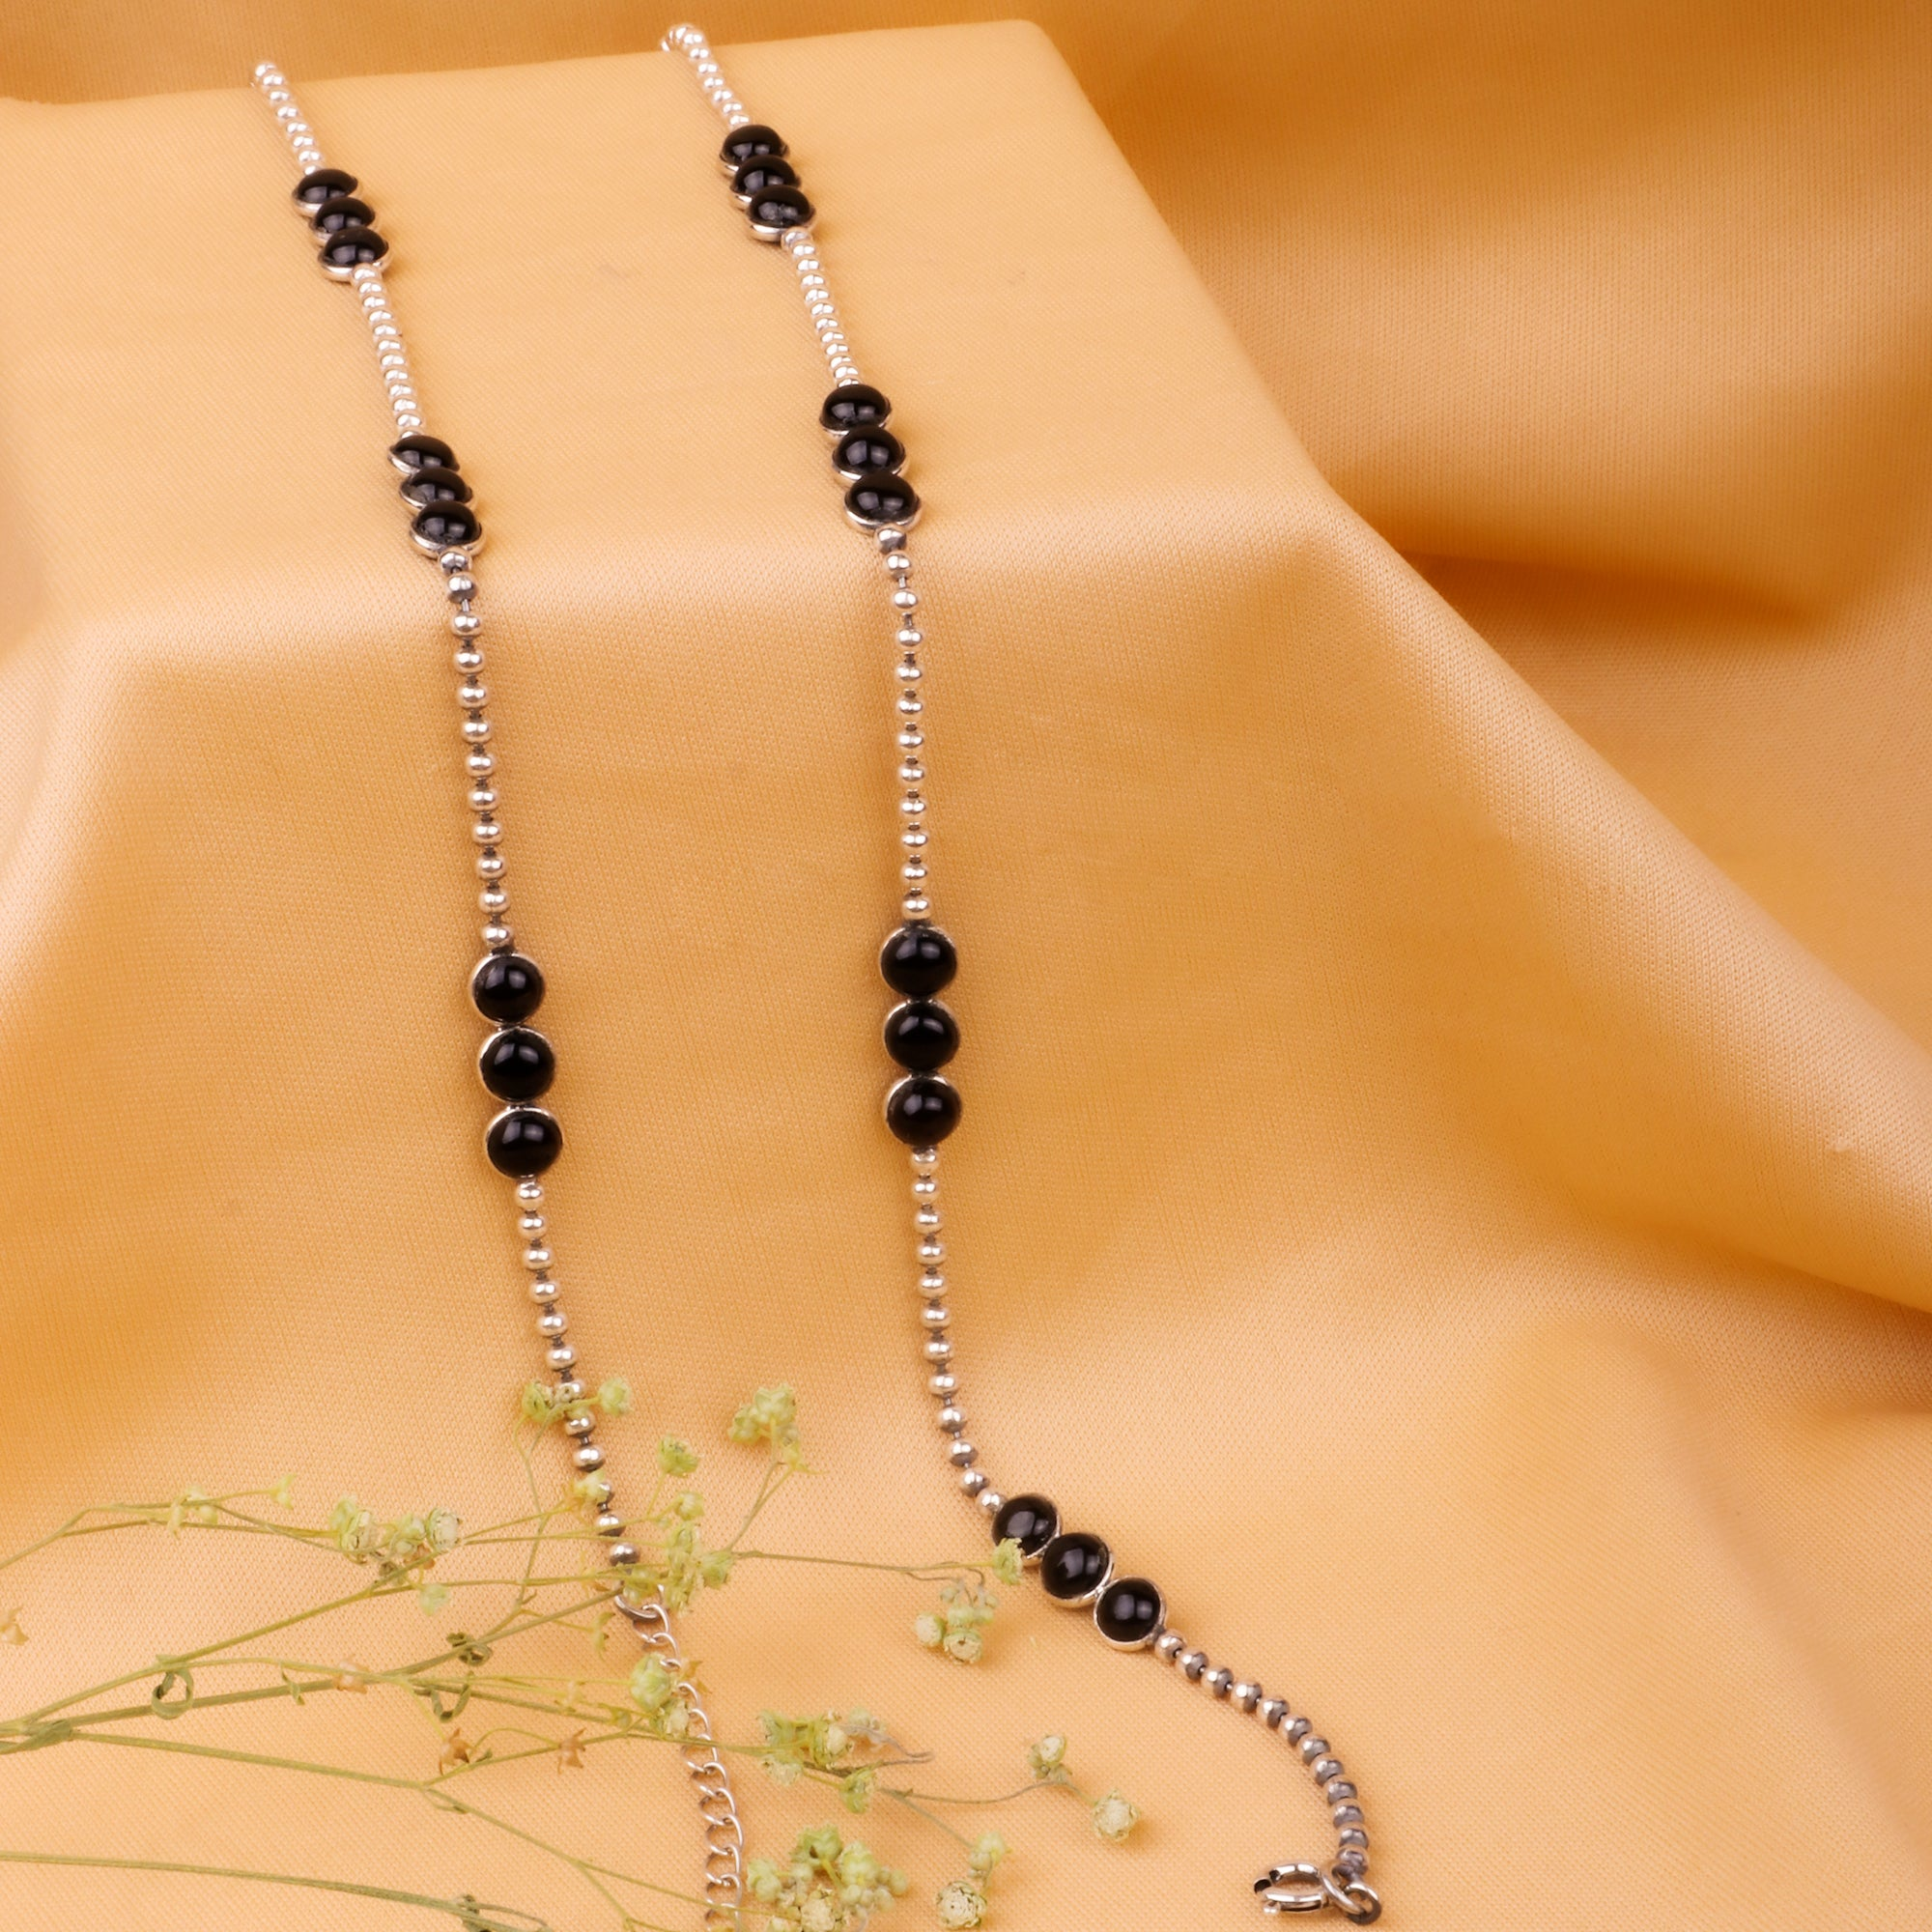 Oxidised Silver Black Beads Anklet